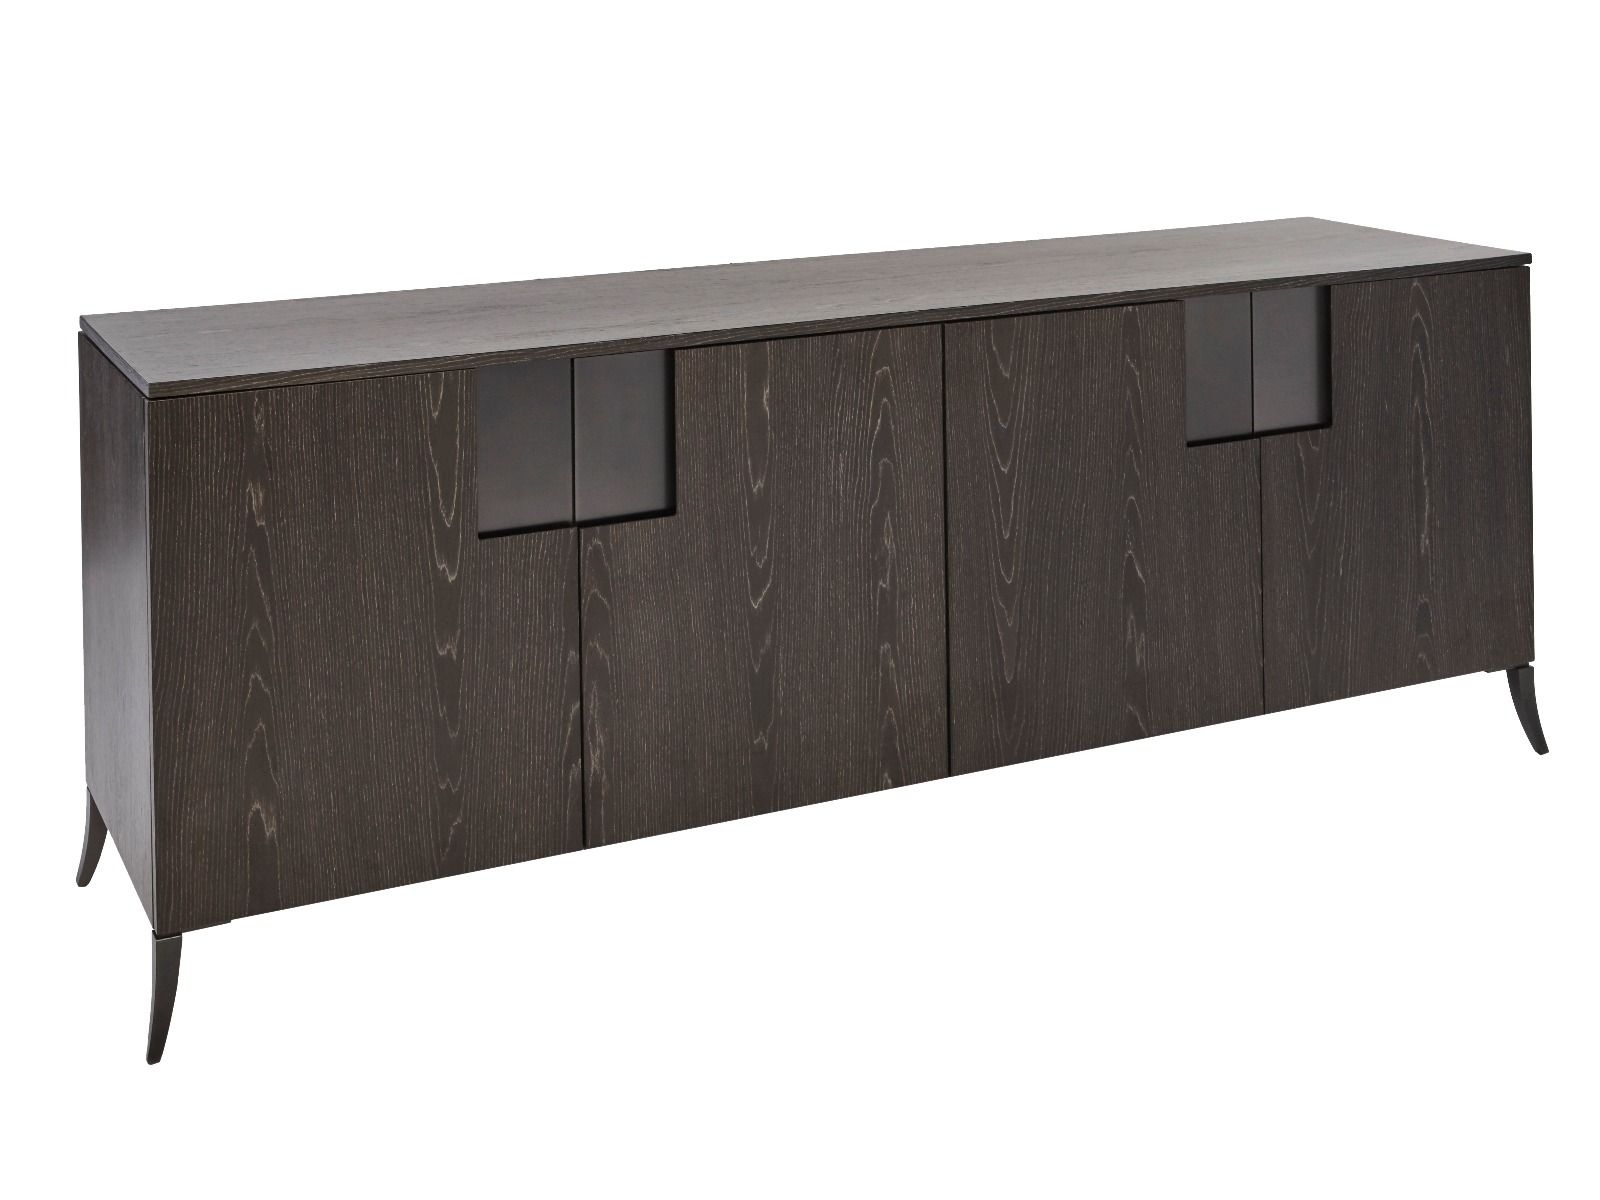 Buffet Sideboard Double Length | Collection From Gillmore Regarding Most Current 4 Door Wood Squares Sideboards (#2 of 20)